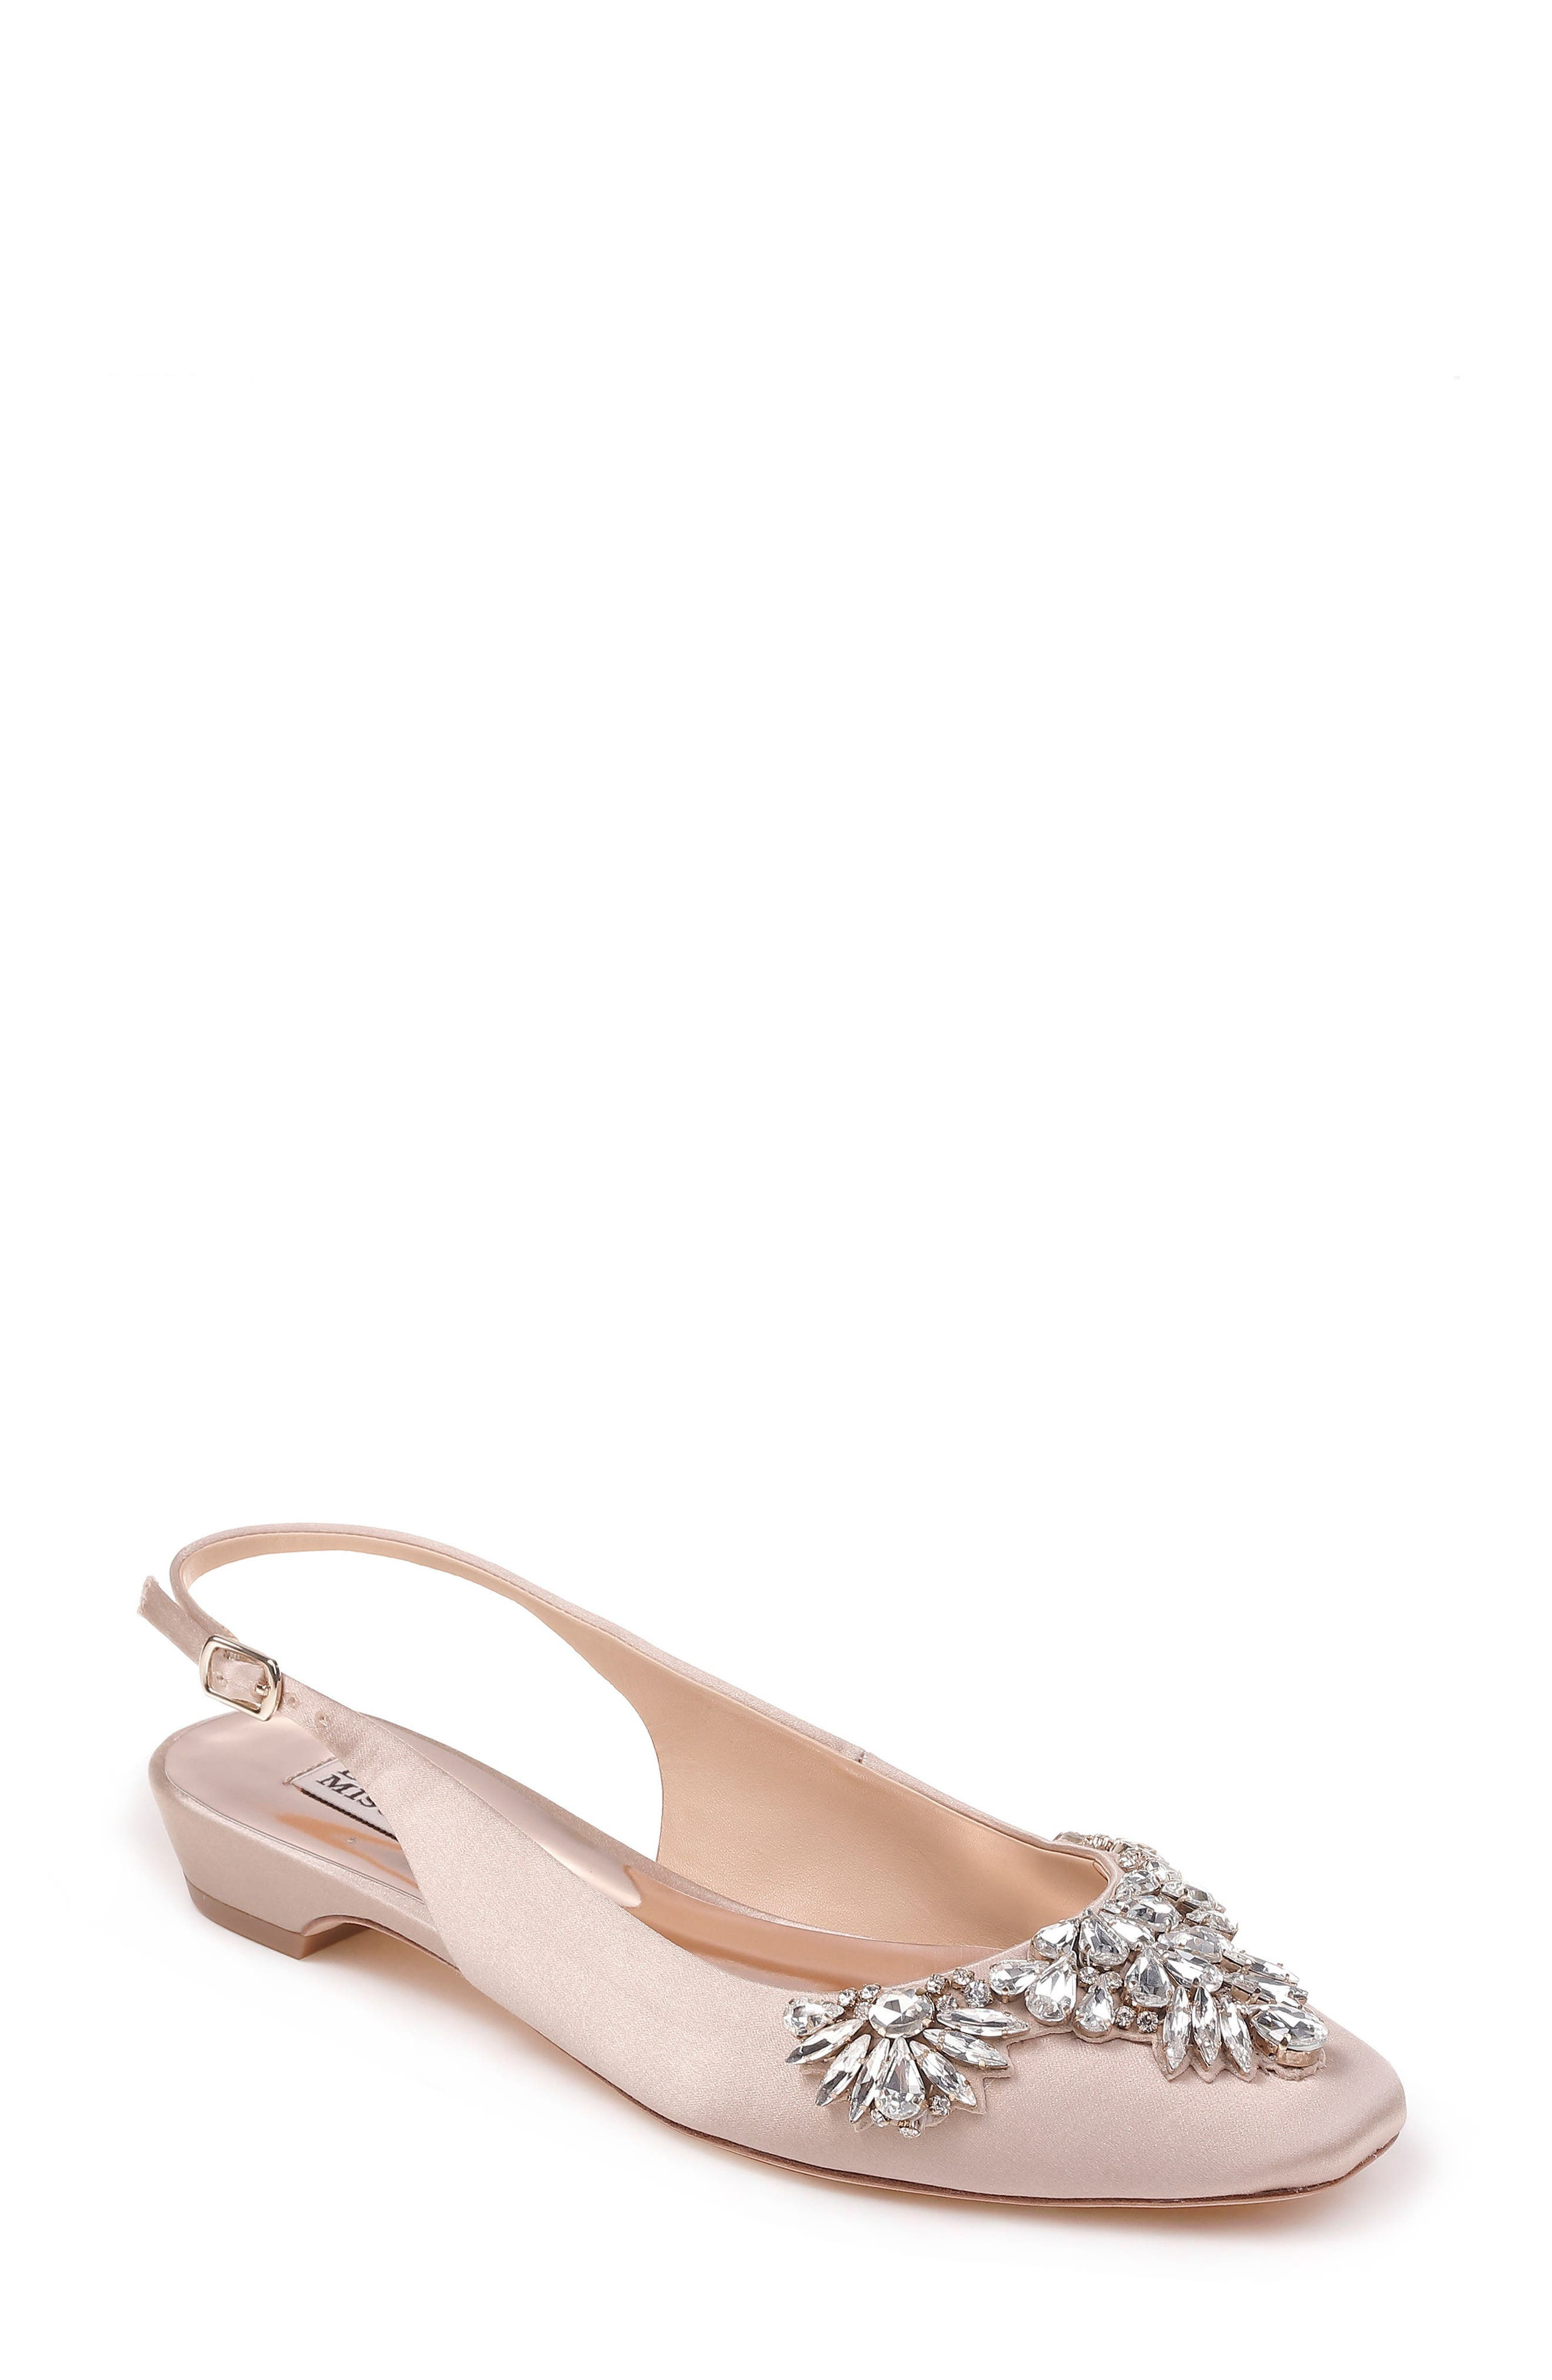 Alternate Image 1 Selected - Badgley Mischka Shayla Slingback Flat (Women)